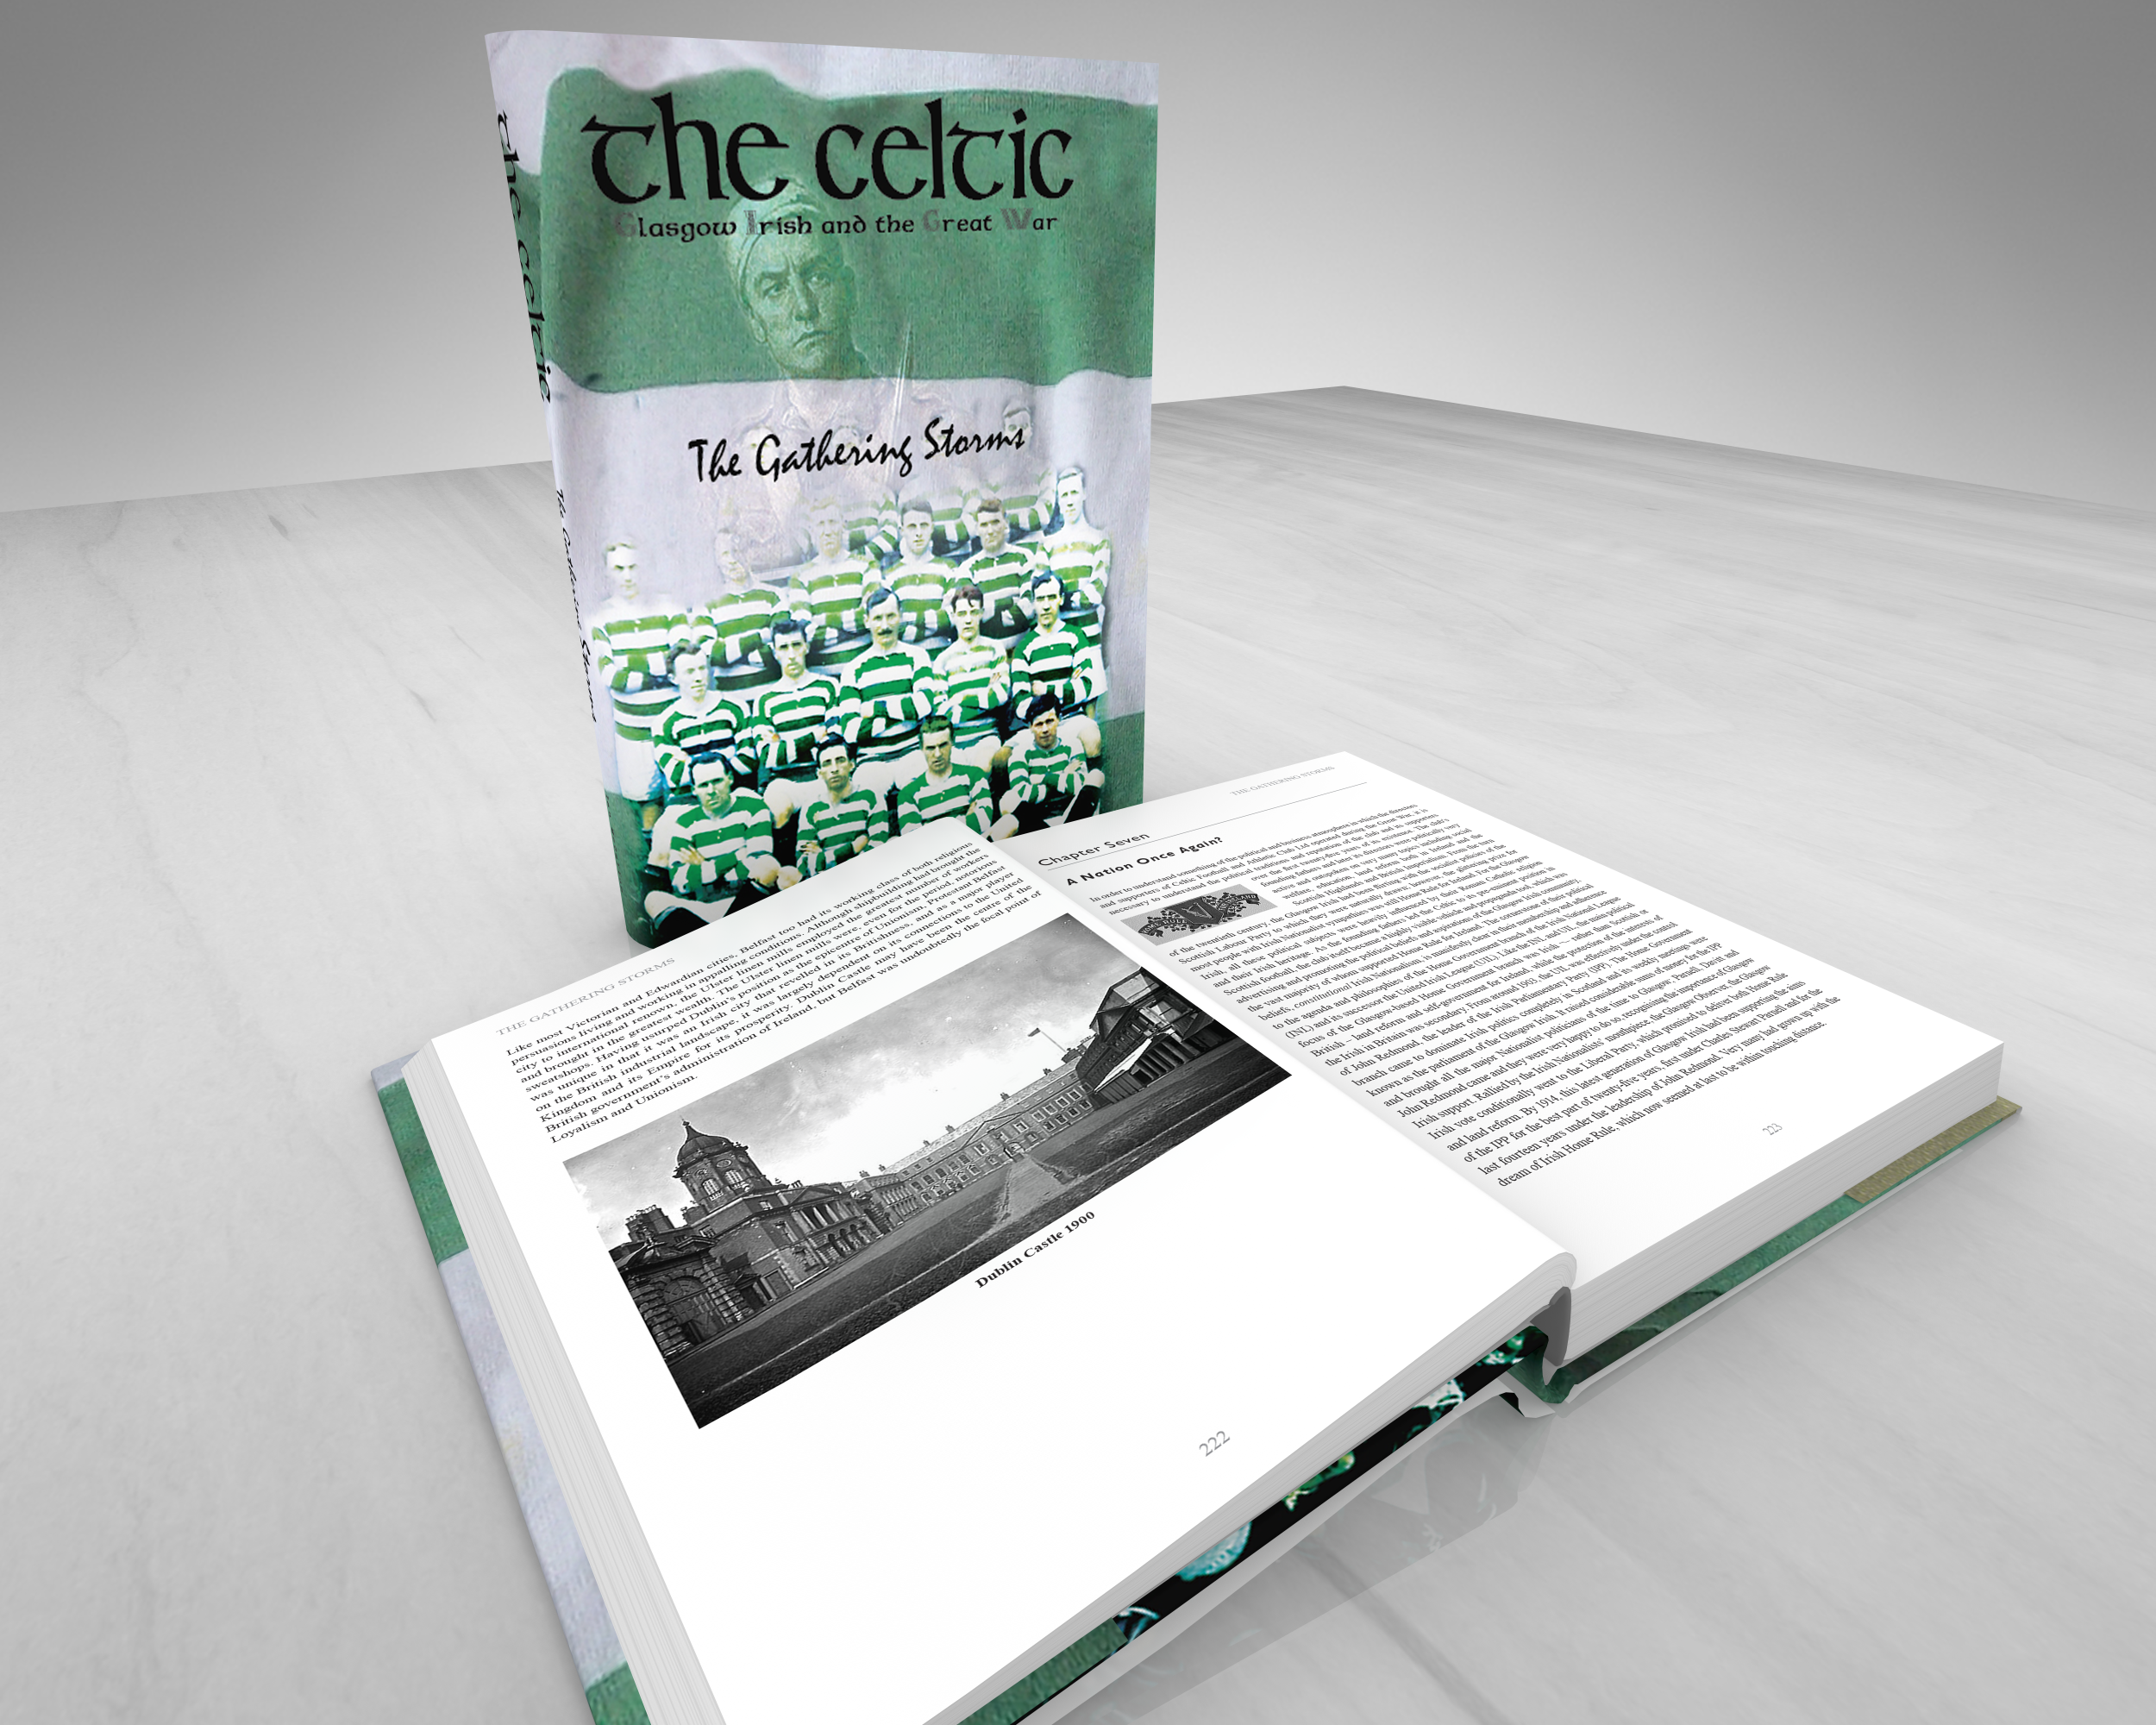 The Celtic: Glasgow Irish and the Great War